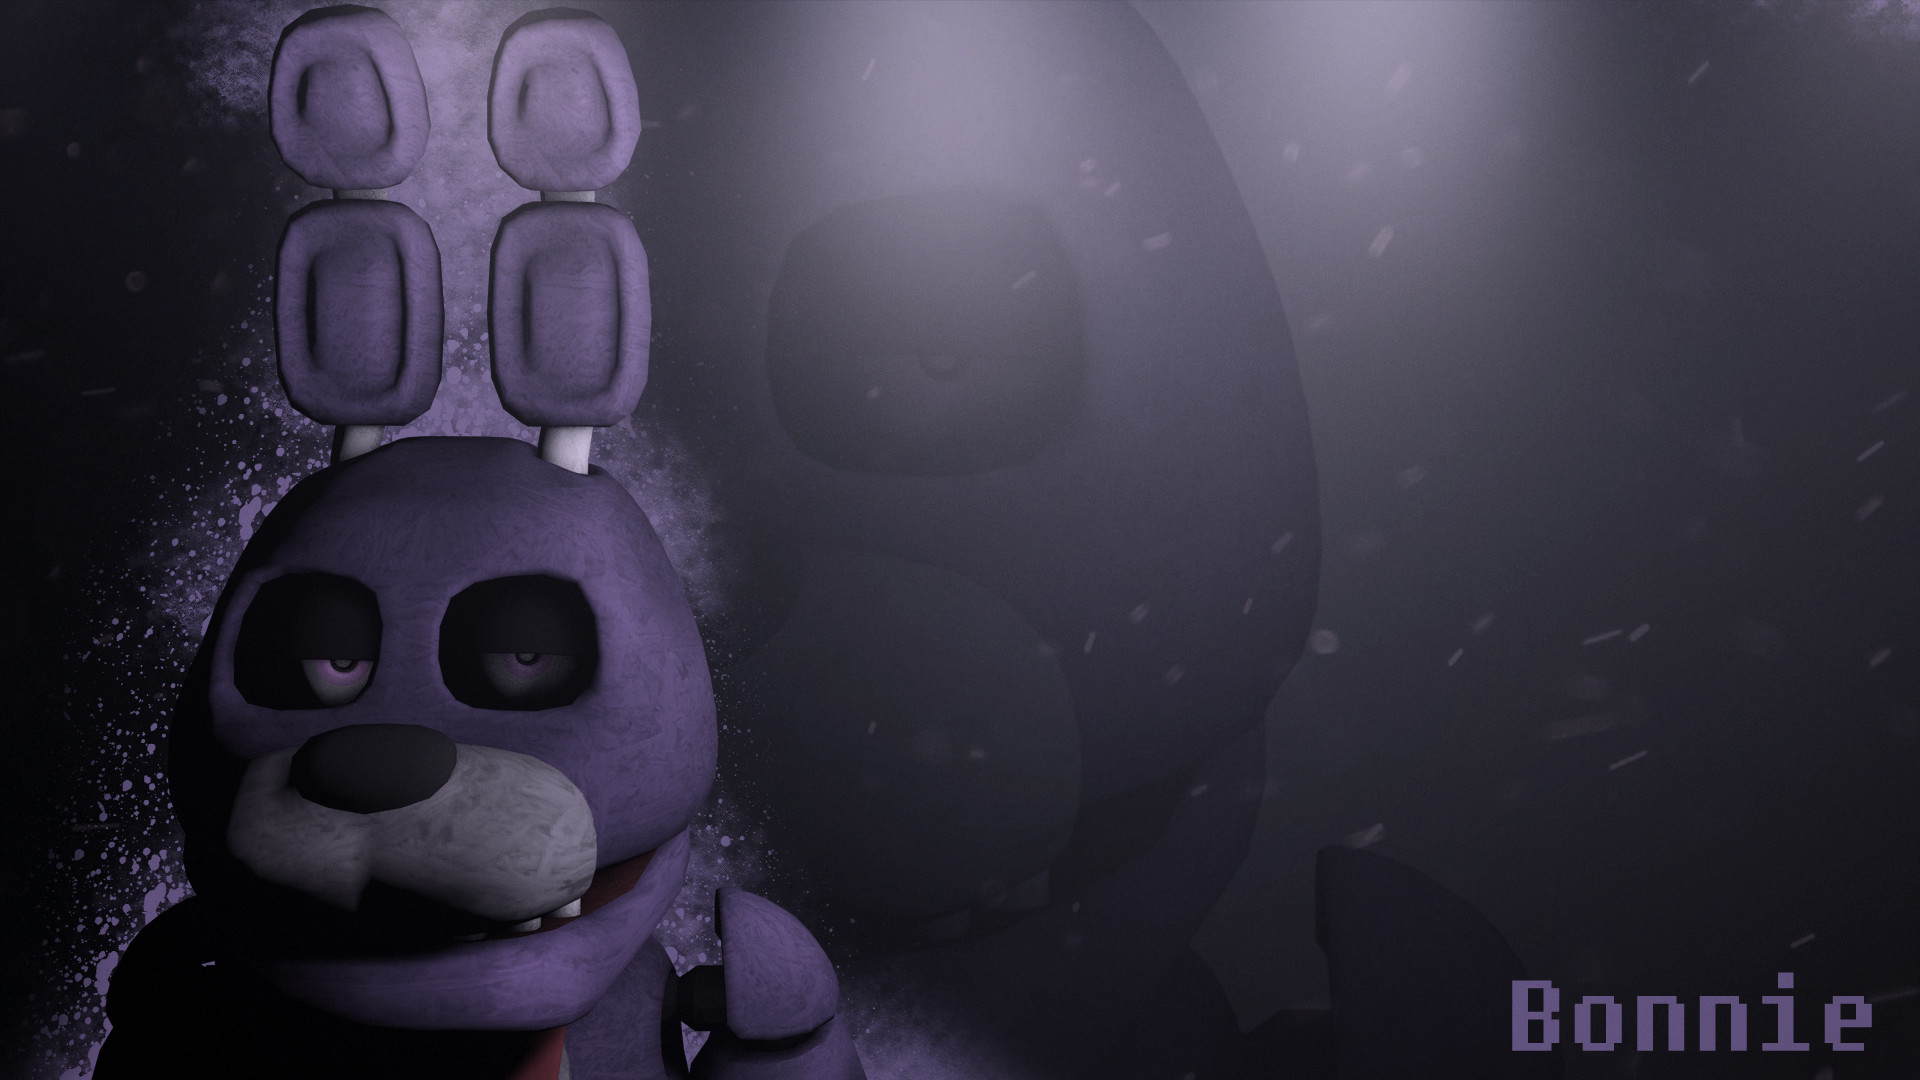 Five Nights At Freddy's Bonnie Animated fnaf bonnie wallpaper (83+ images)